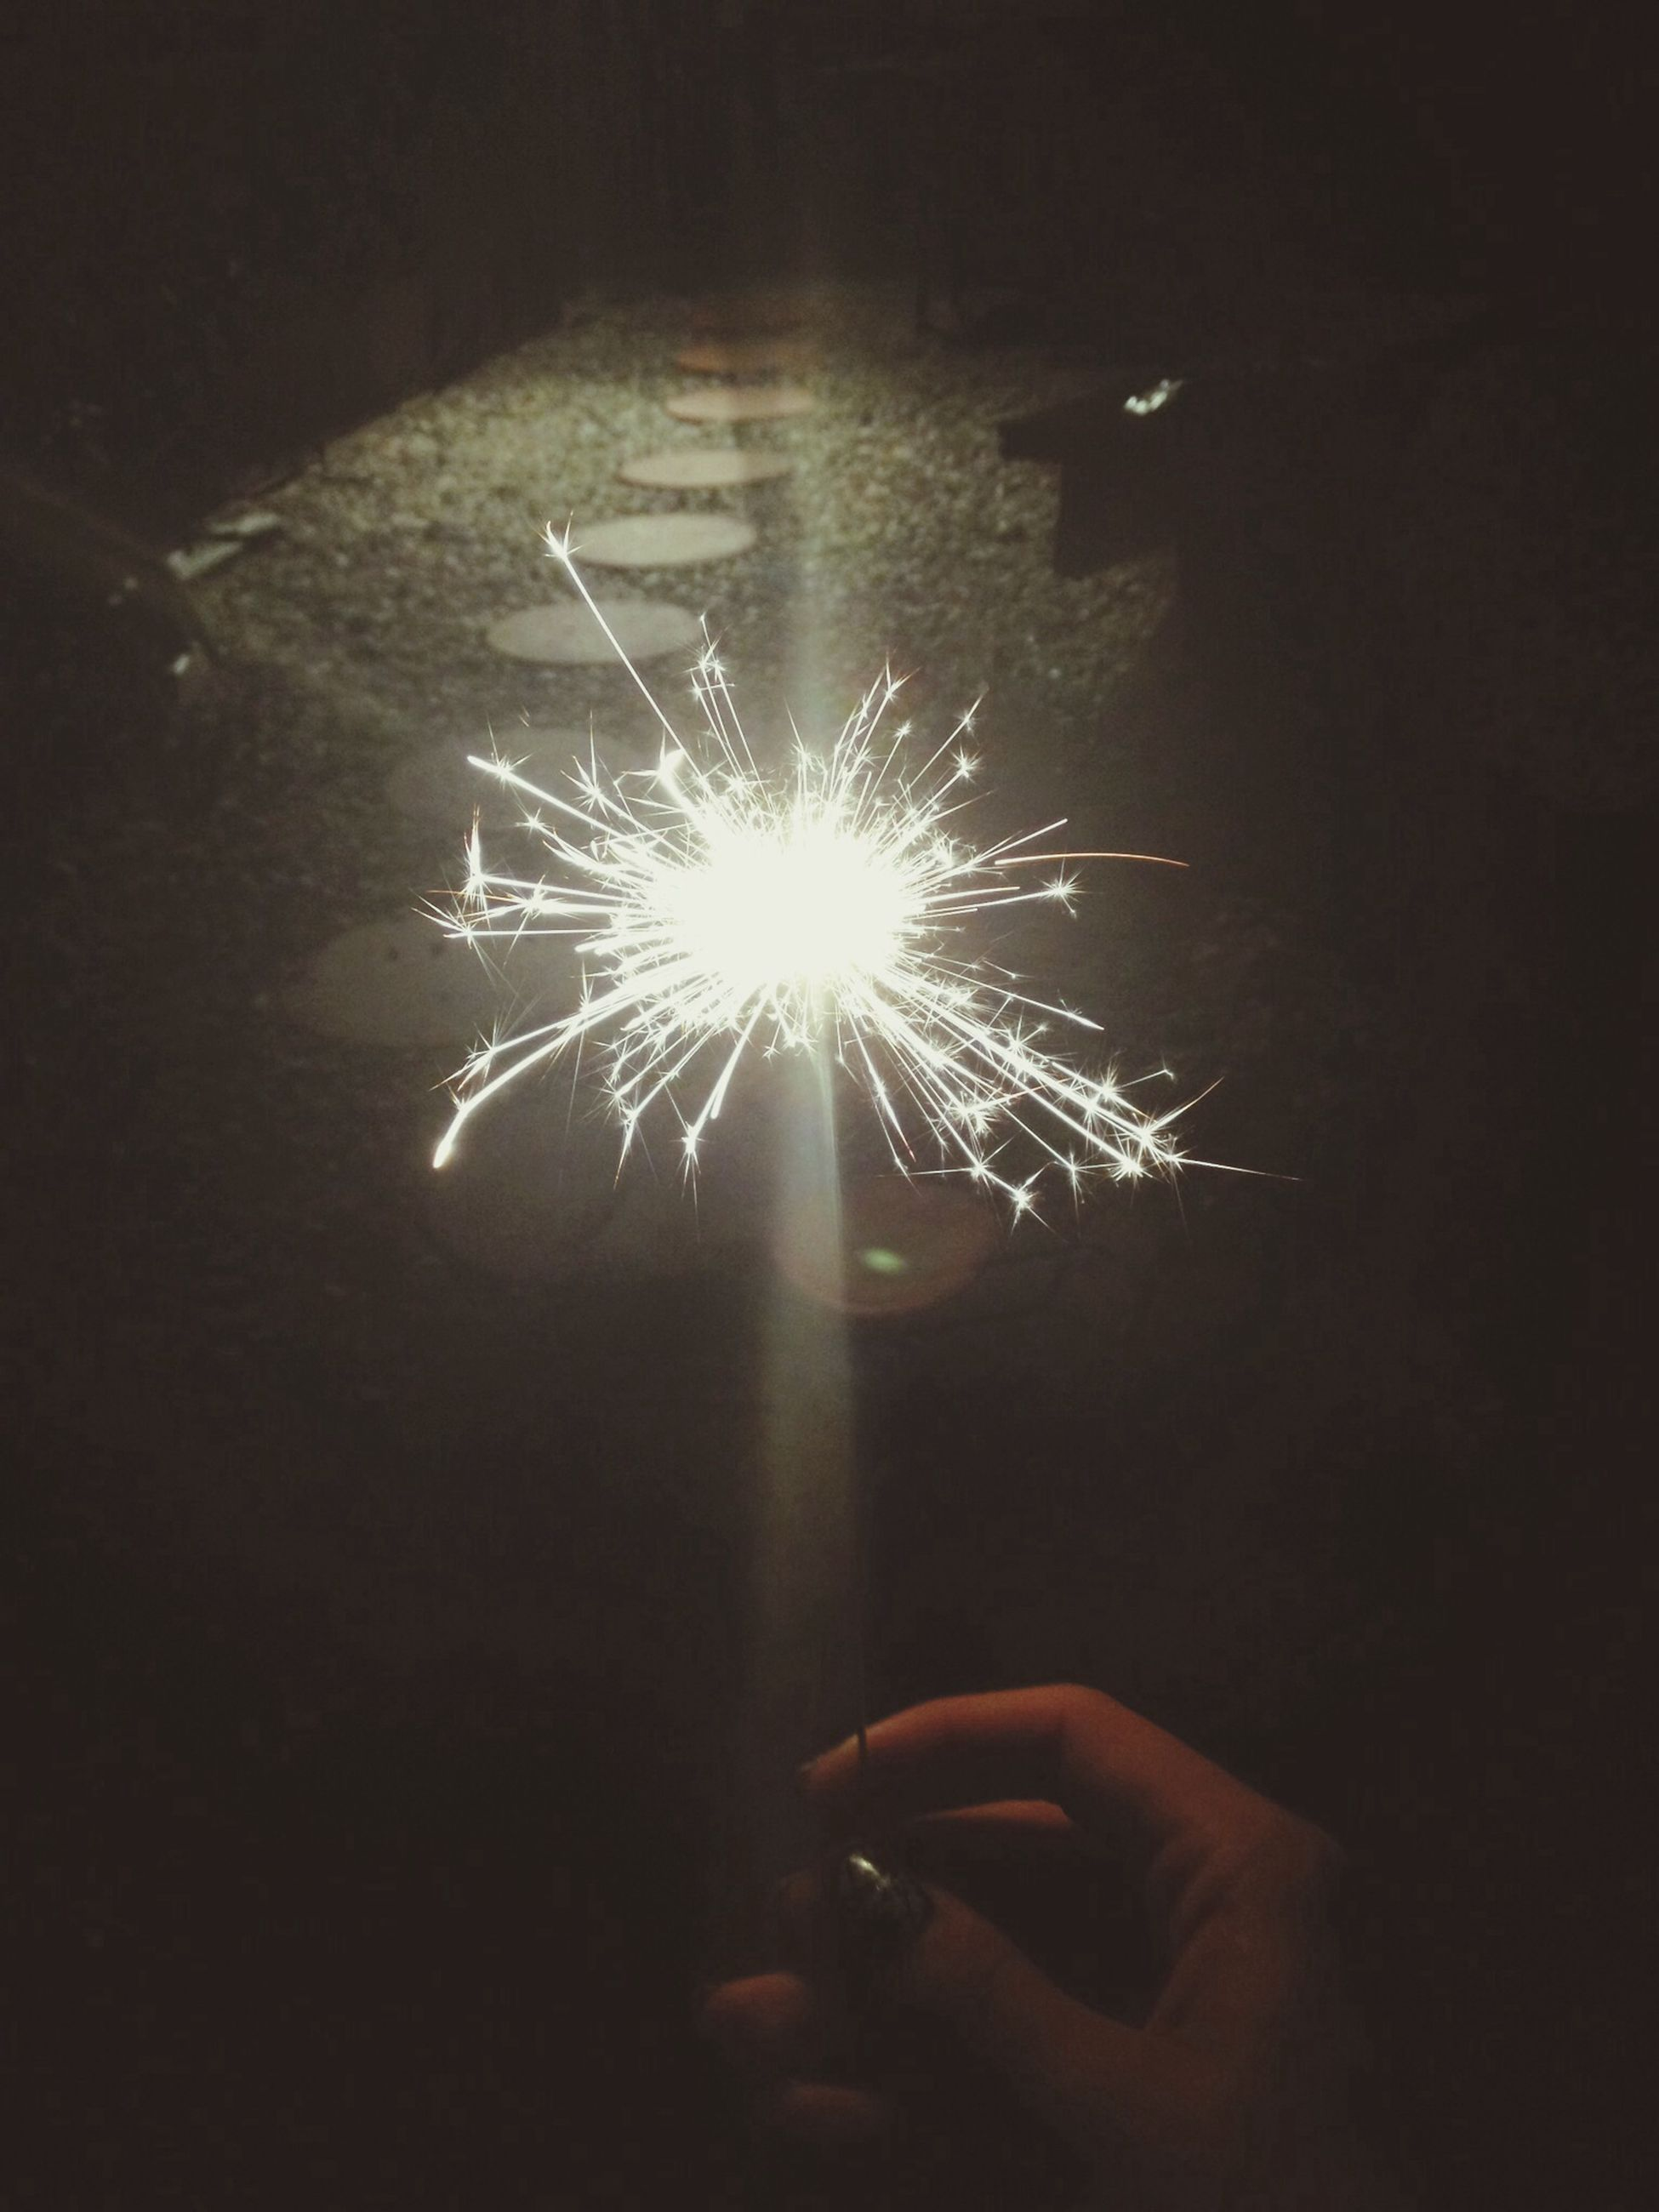 glowing, illuminated, night, person, celebration, fire - natural phenomenon, burning, dark, part of, unrecognizable person, flame, sparks, indoors, light - natural phenomenon, exploding, firework display, lit